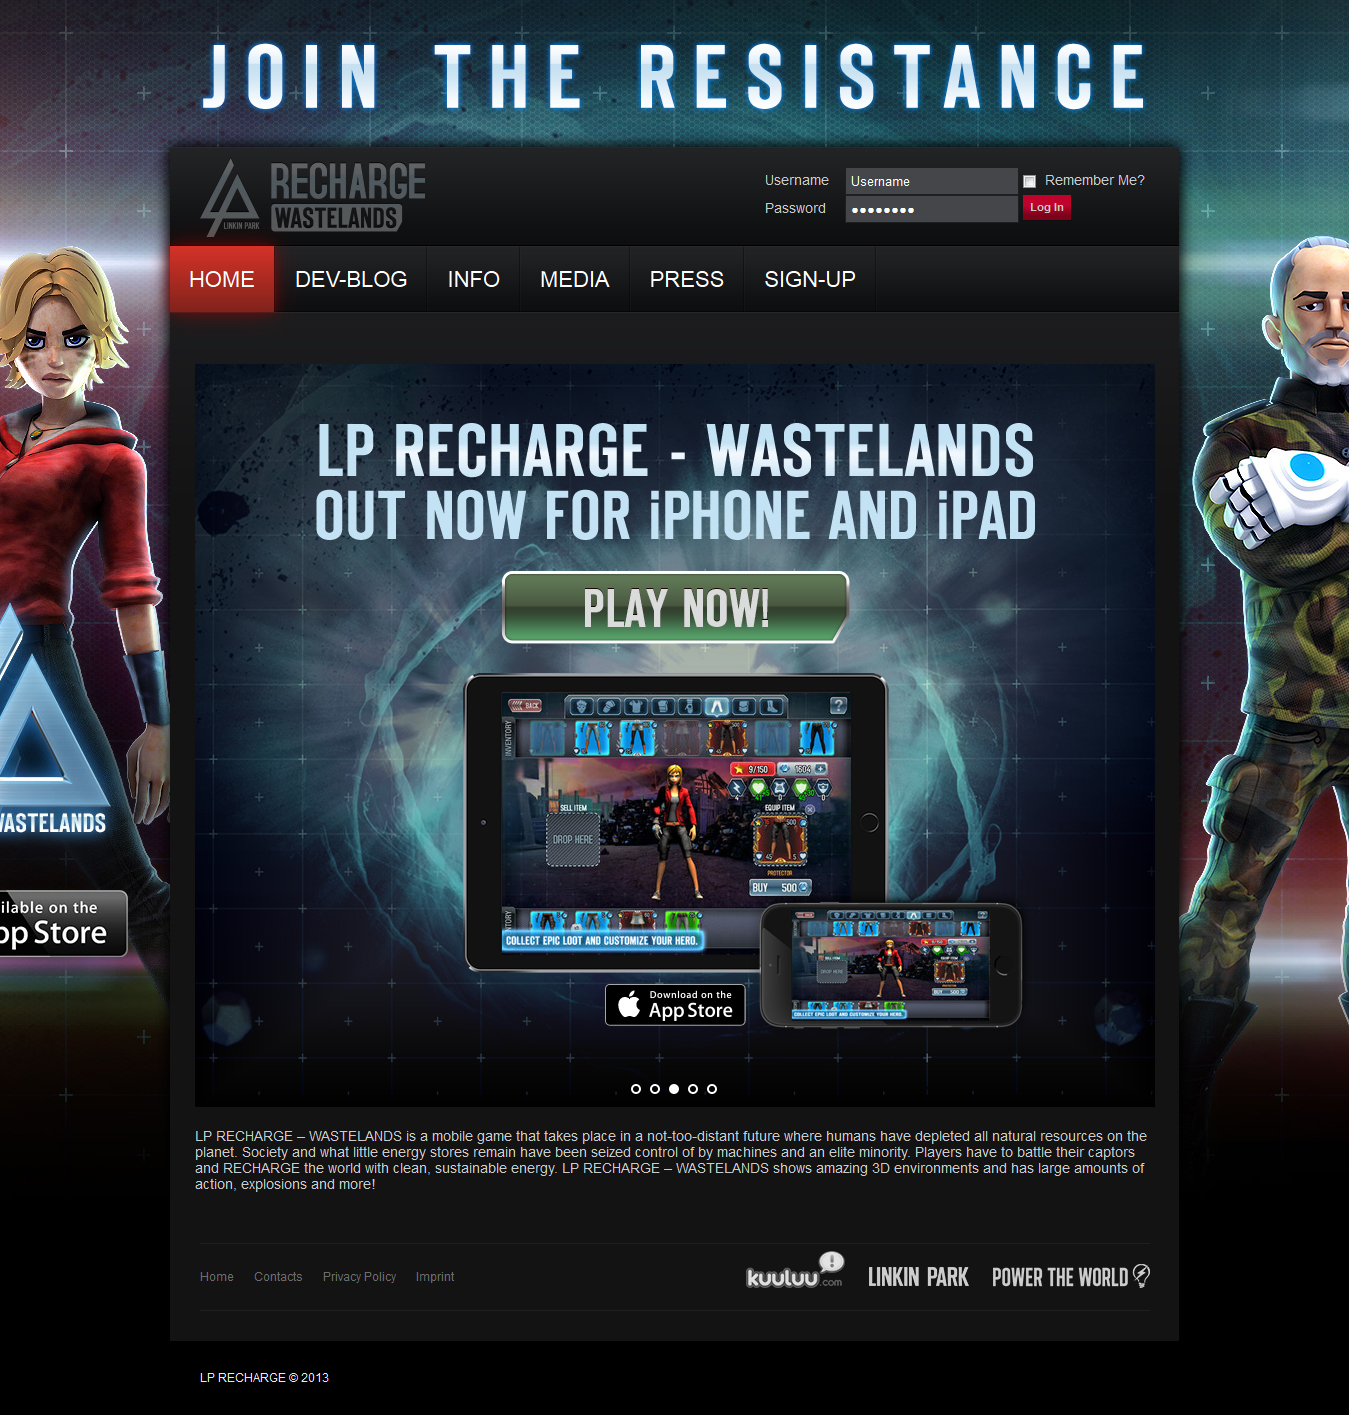 LP RECHARGE JOIN THE RESISTANCE